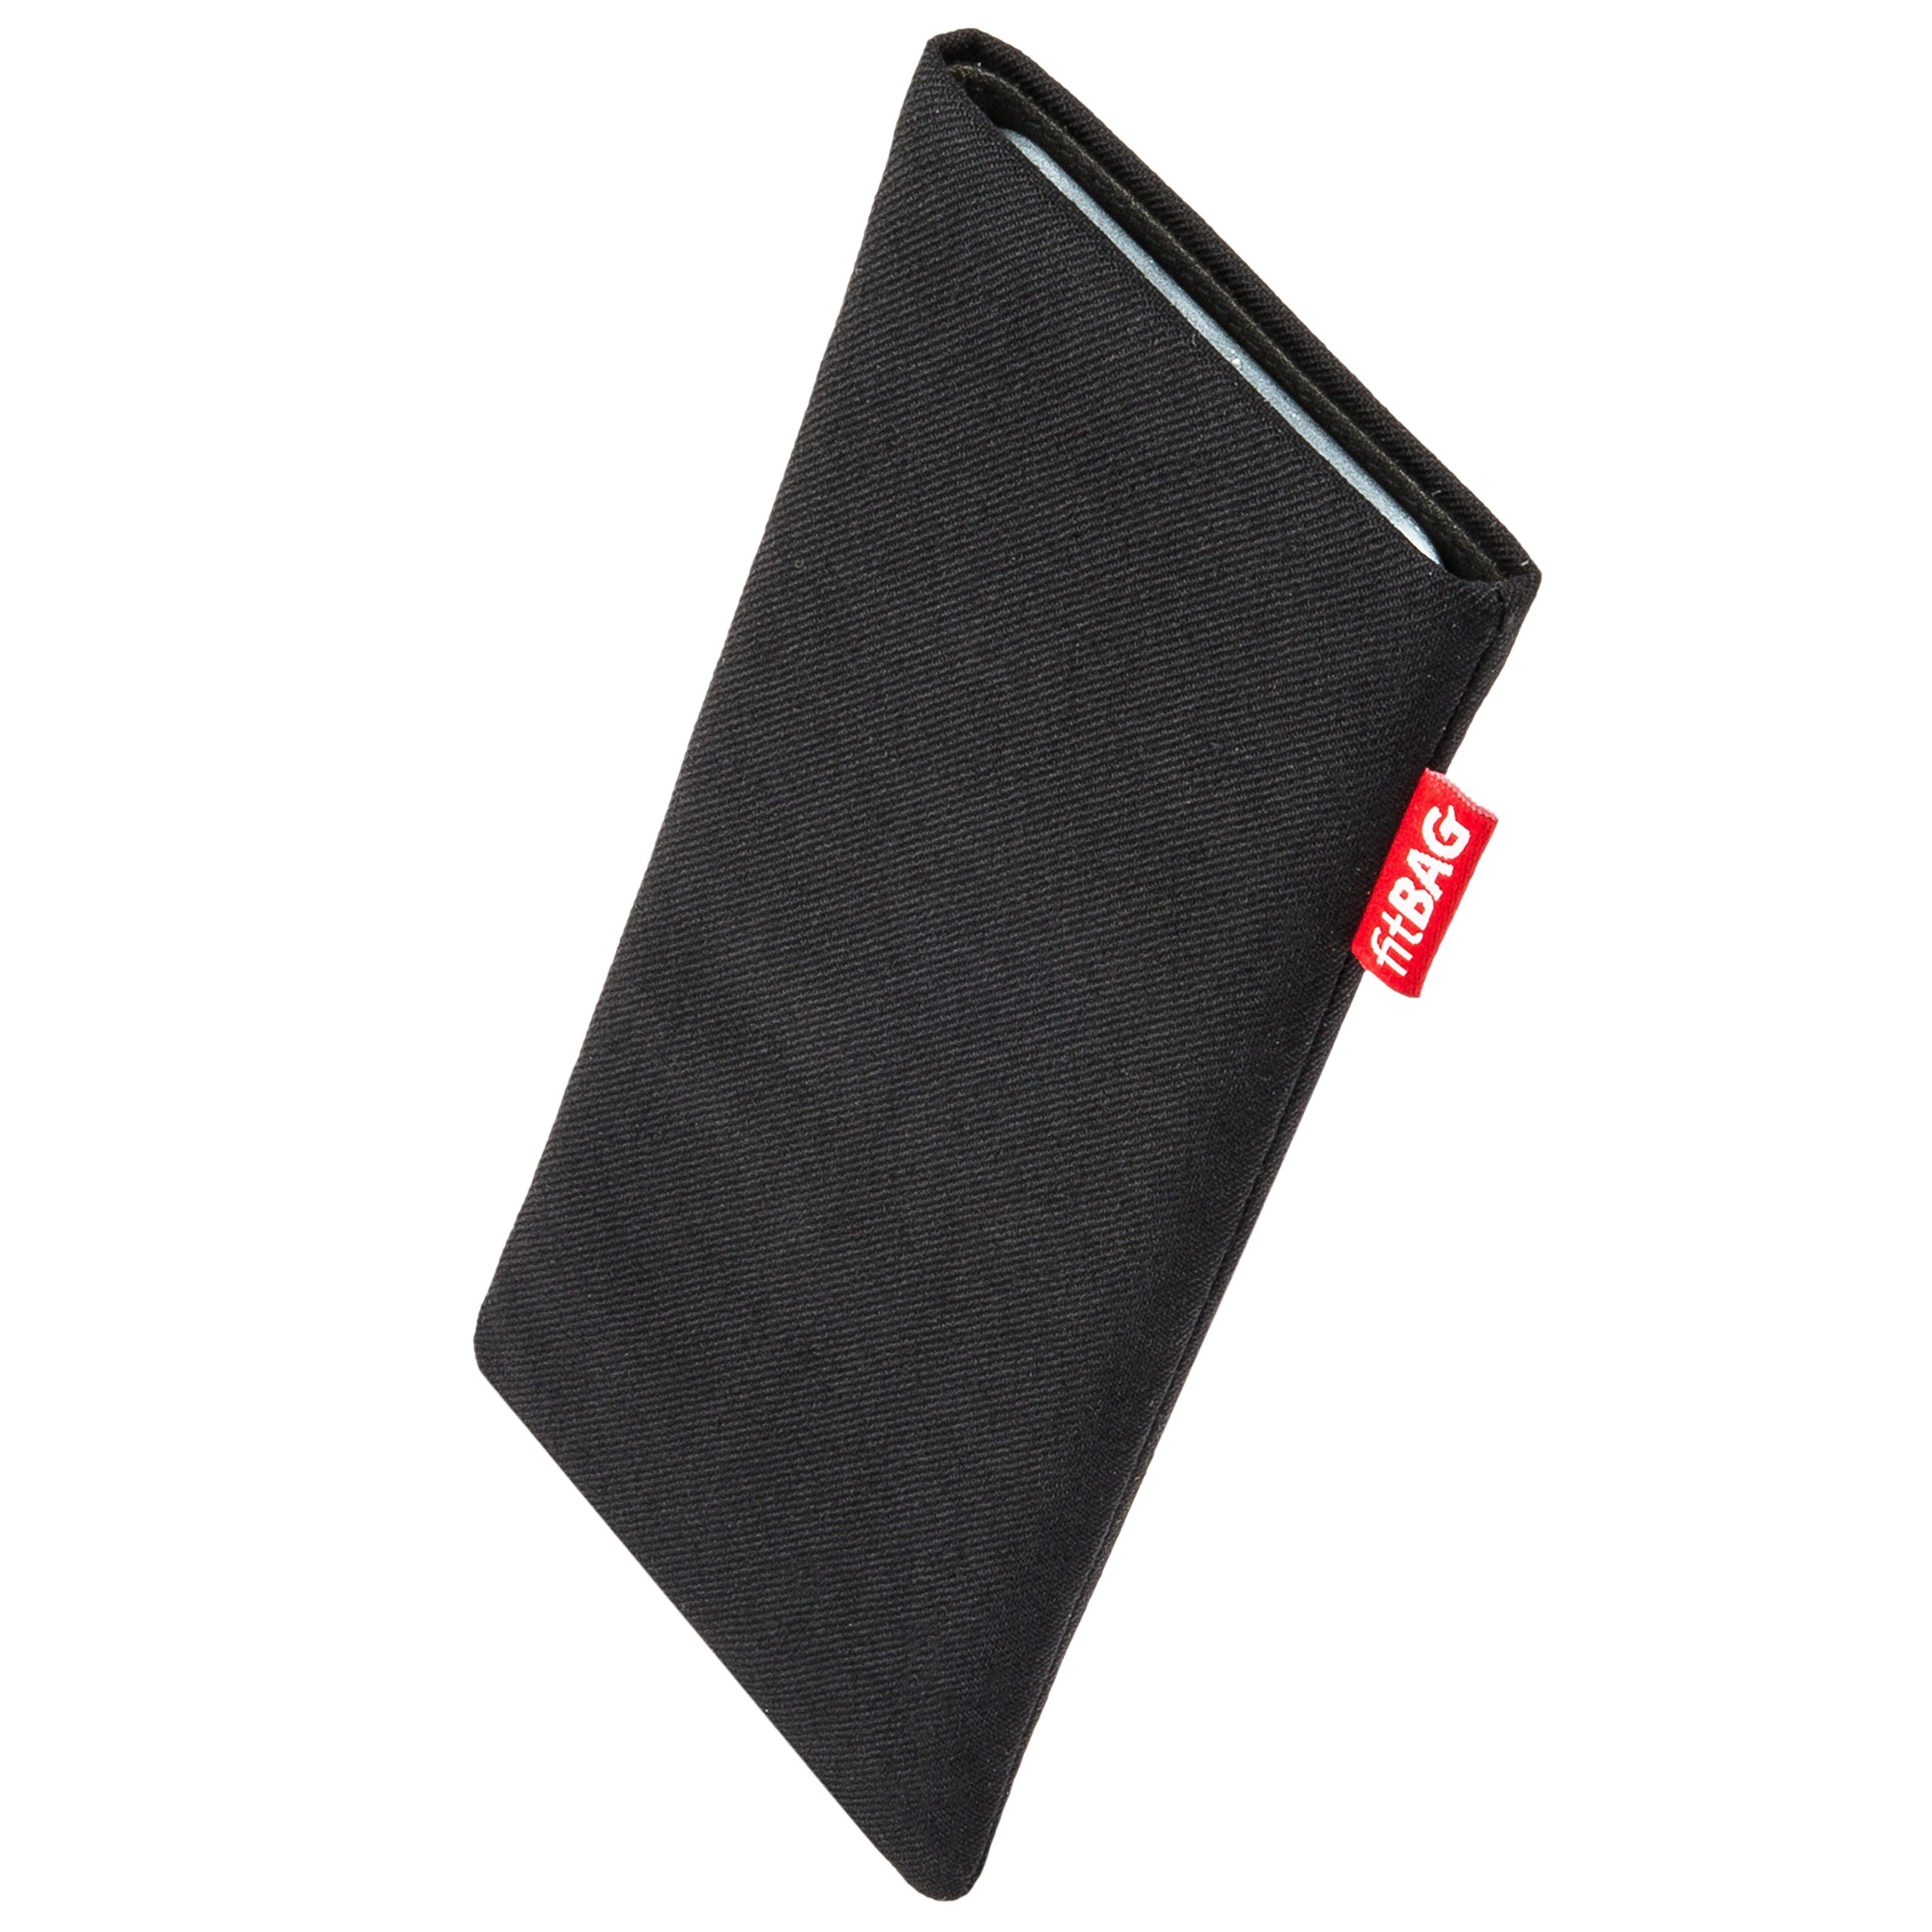 fitBAG Rave Black Custom Tailored Sleeve for Apple iPhone X/Xs | Made in Germany | Fine Suit Fabric Pouch case Cover with Microfibre Lining for Display Cleaning